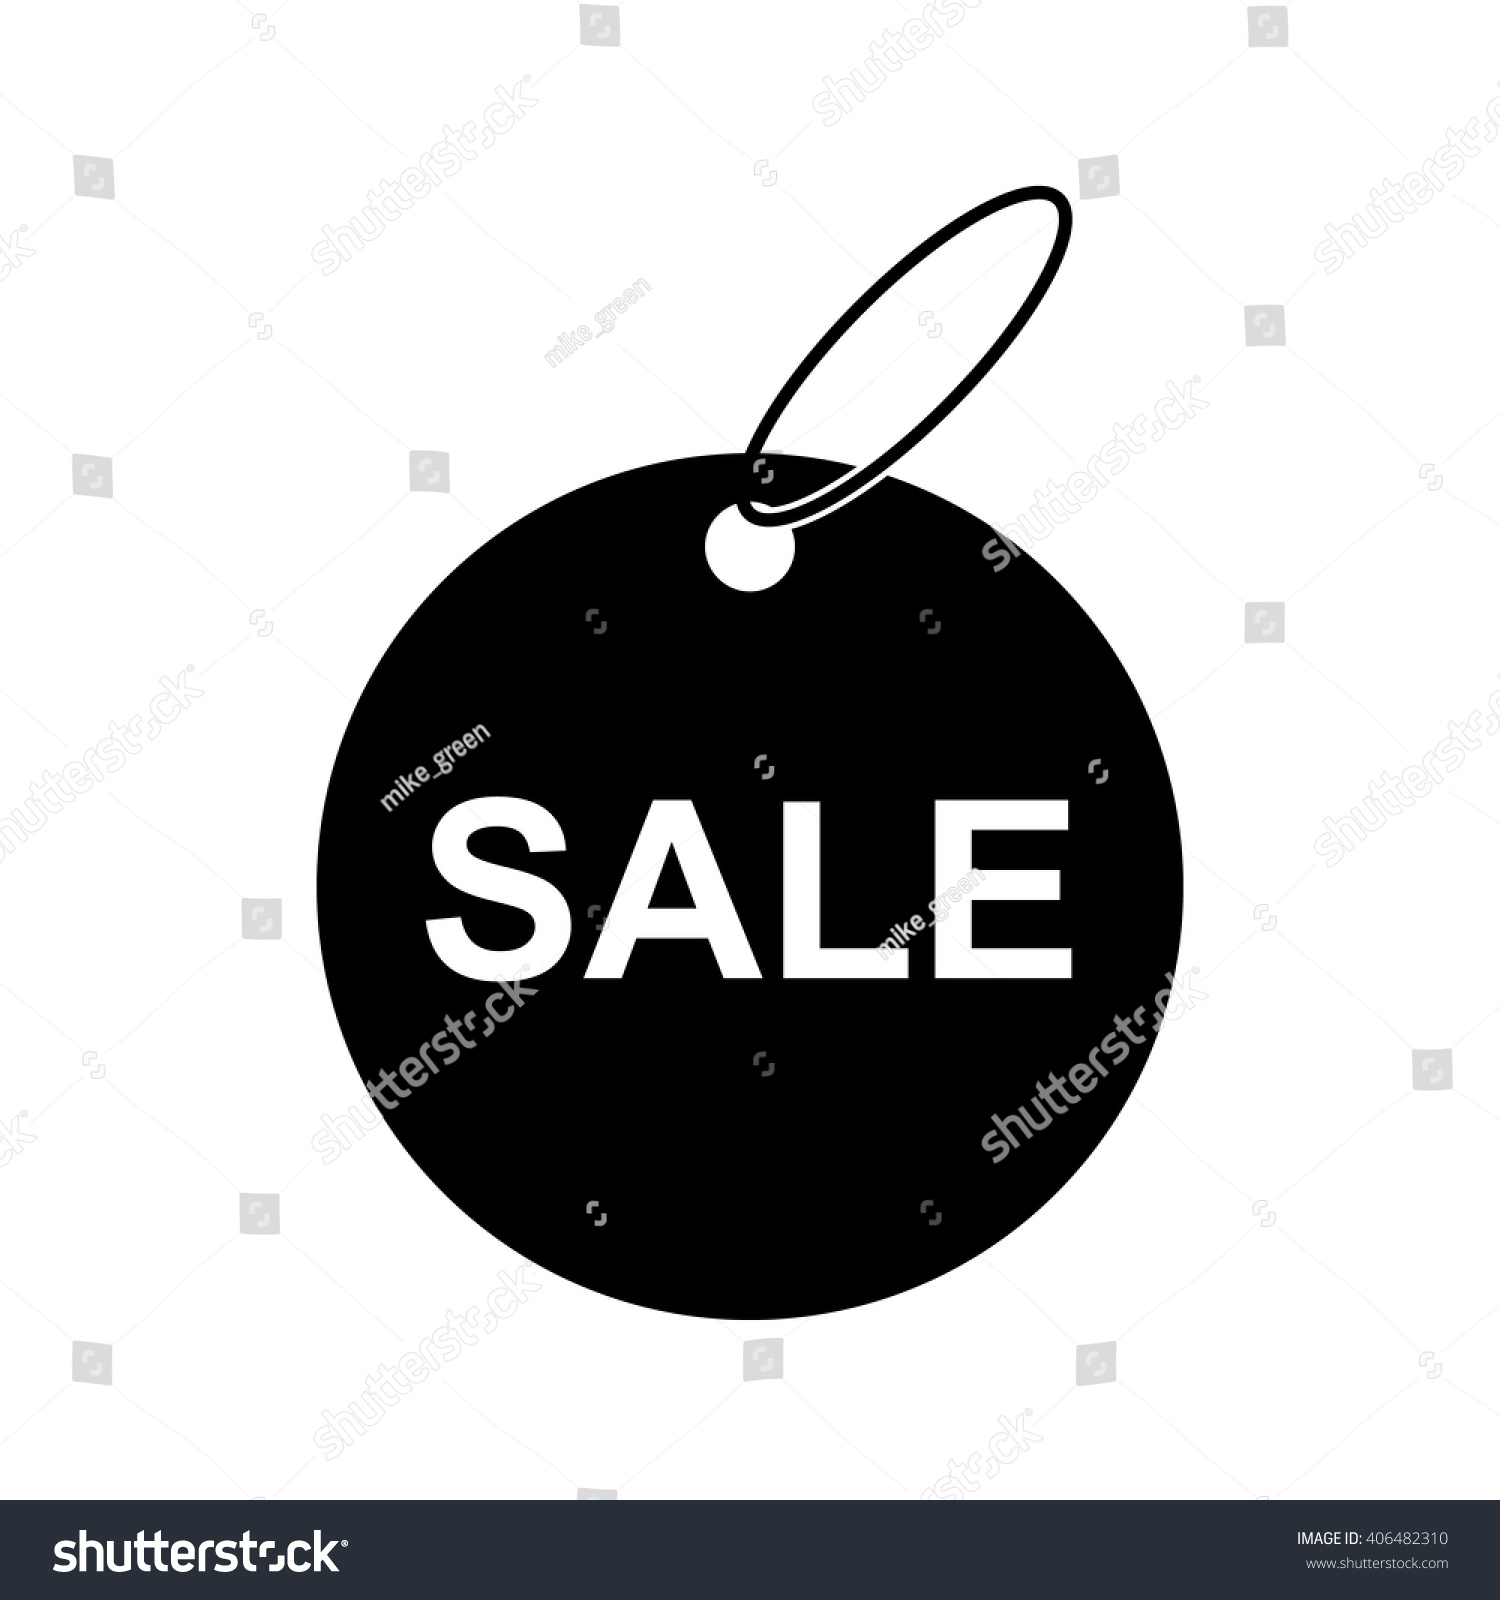 Nike symbol text gallery symbol and sign ideas sale tag icon silhouette symbol vector stock vector 406482310 silhouette symbol vector illustration buycottarizona biocorpaavc